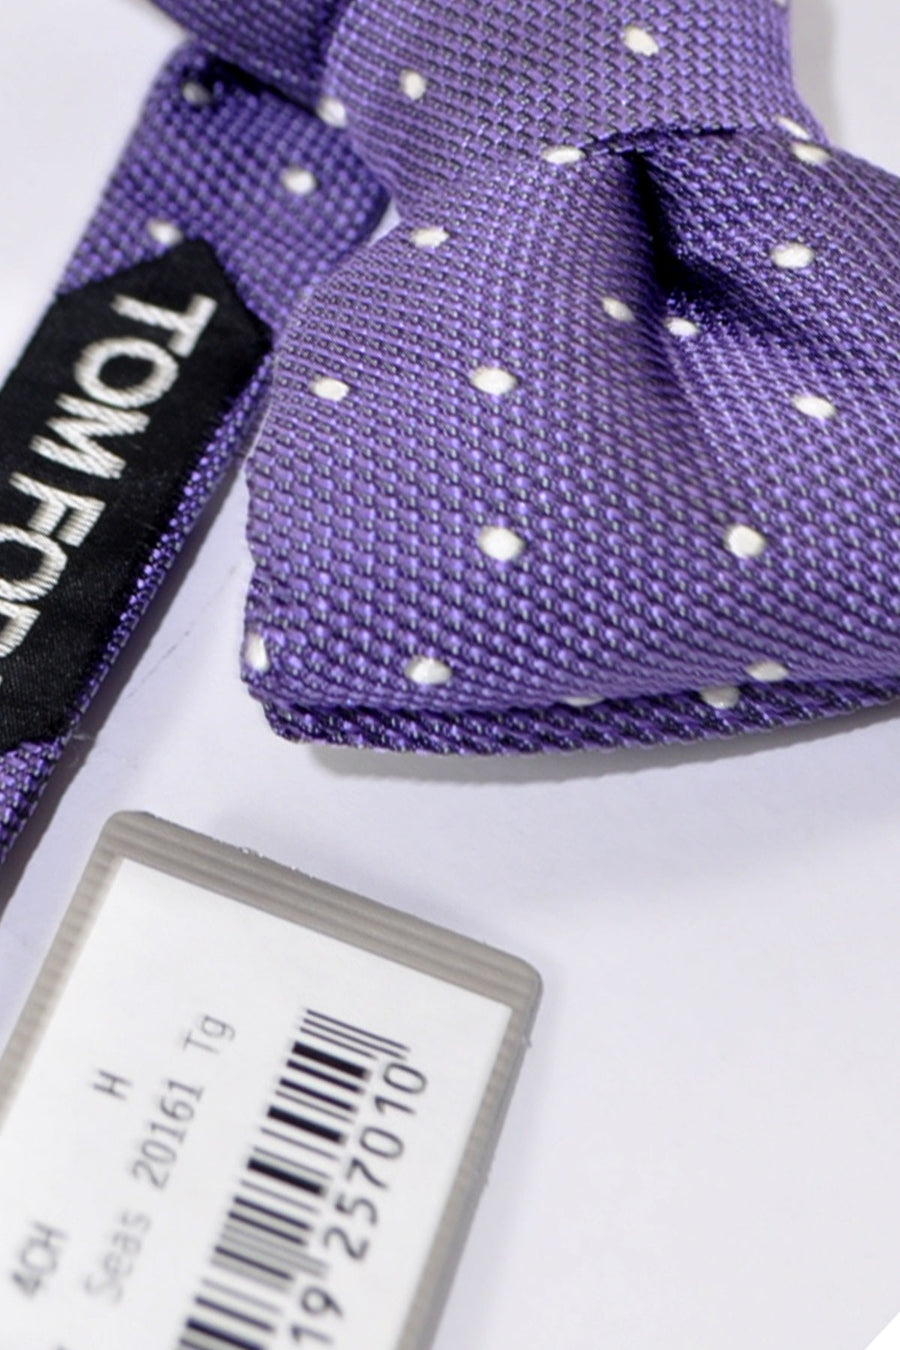 Tom Ford Silk Bow Tie Purple Dots